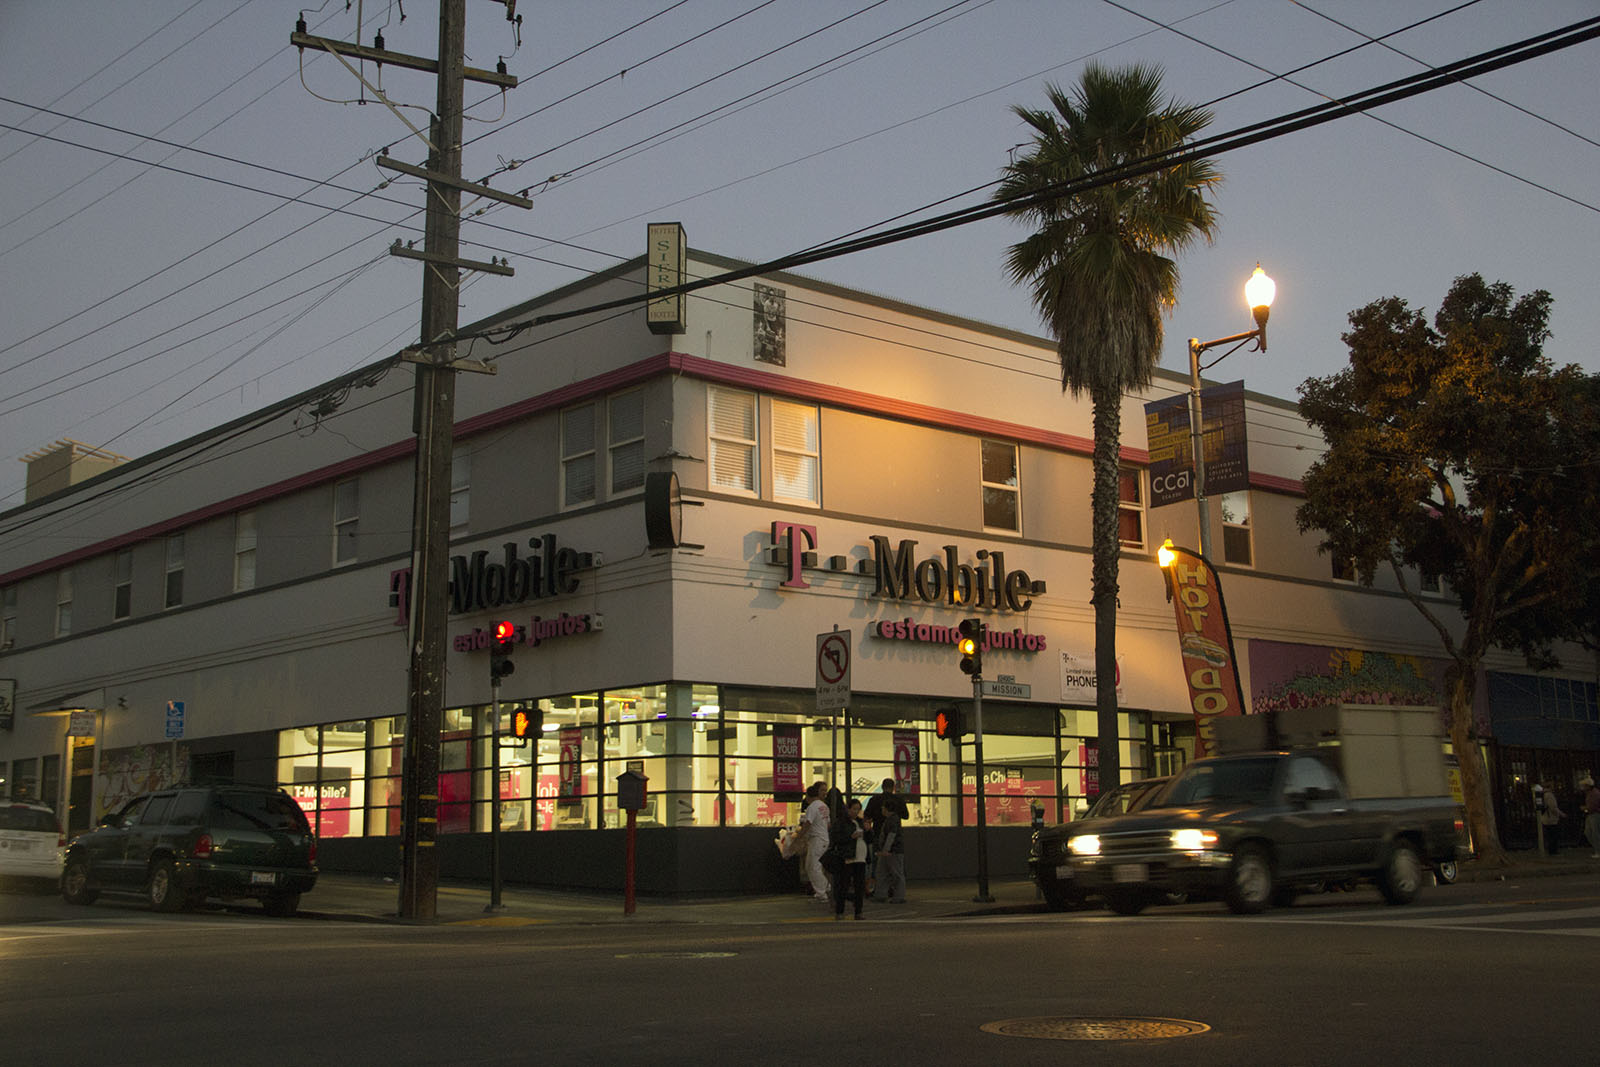 T-Mobile, a chain store that slipped through the cracks of previous formula retail regulation.